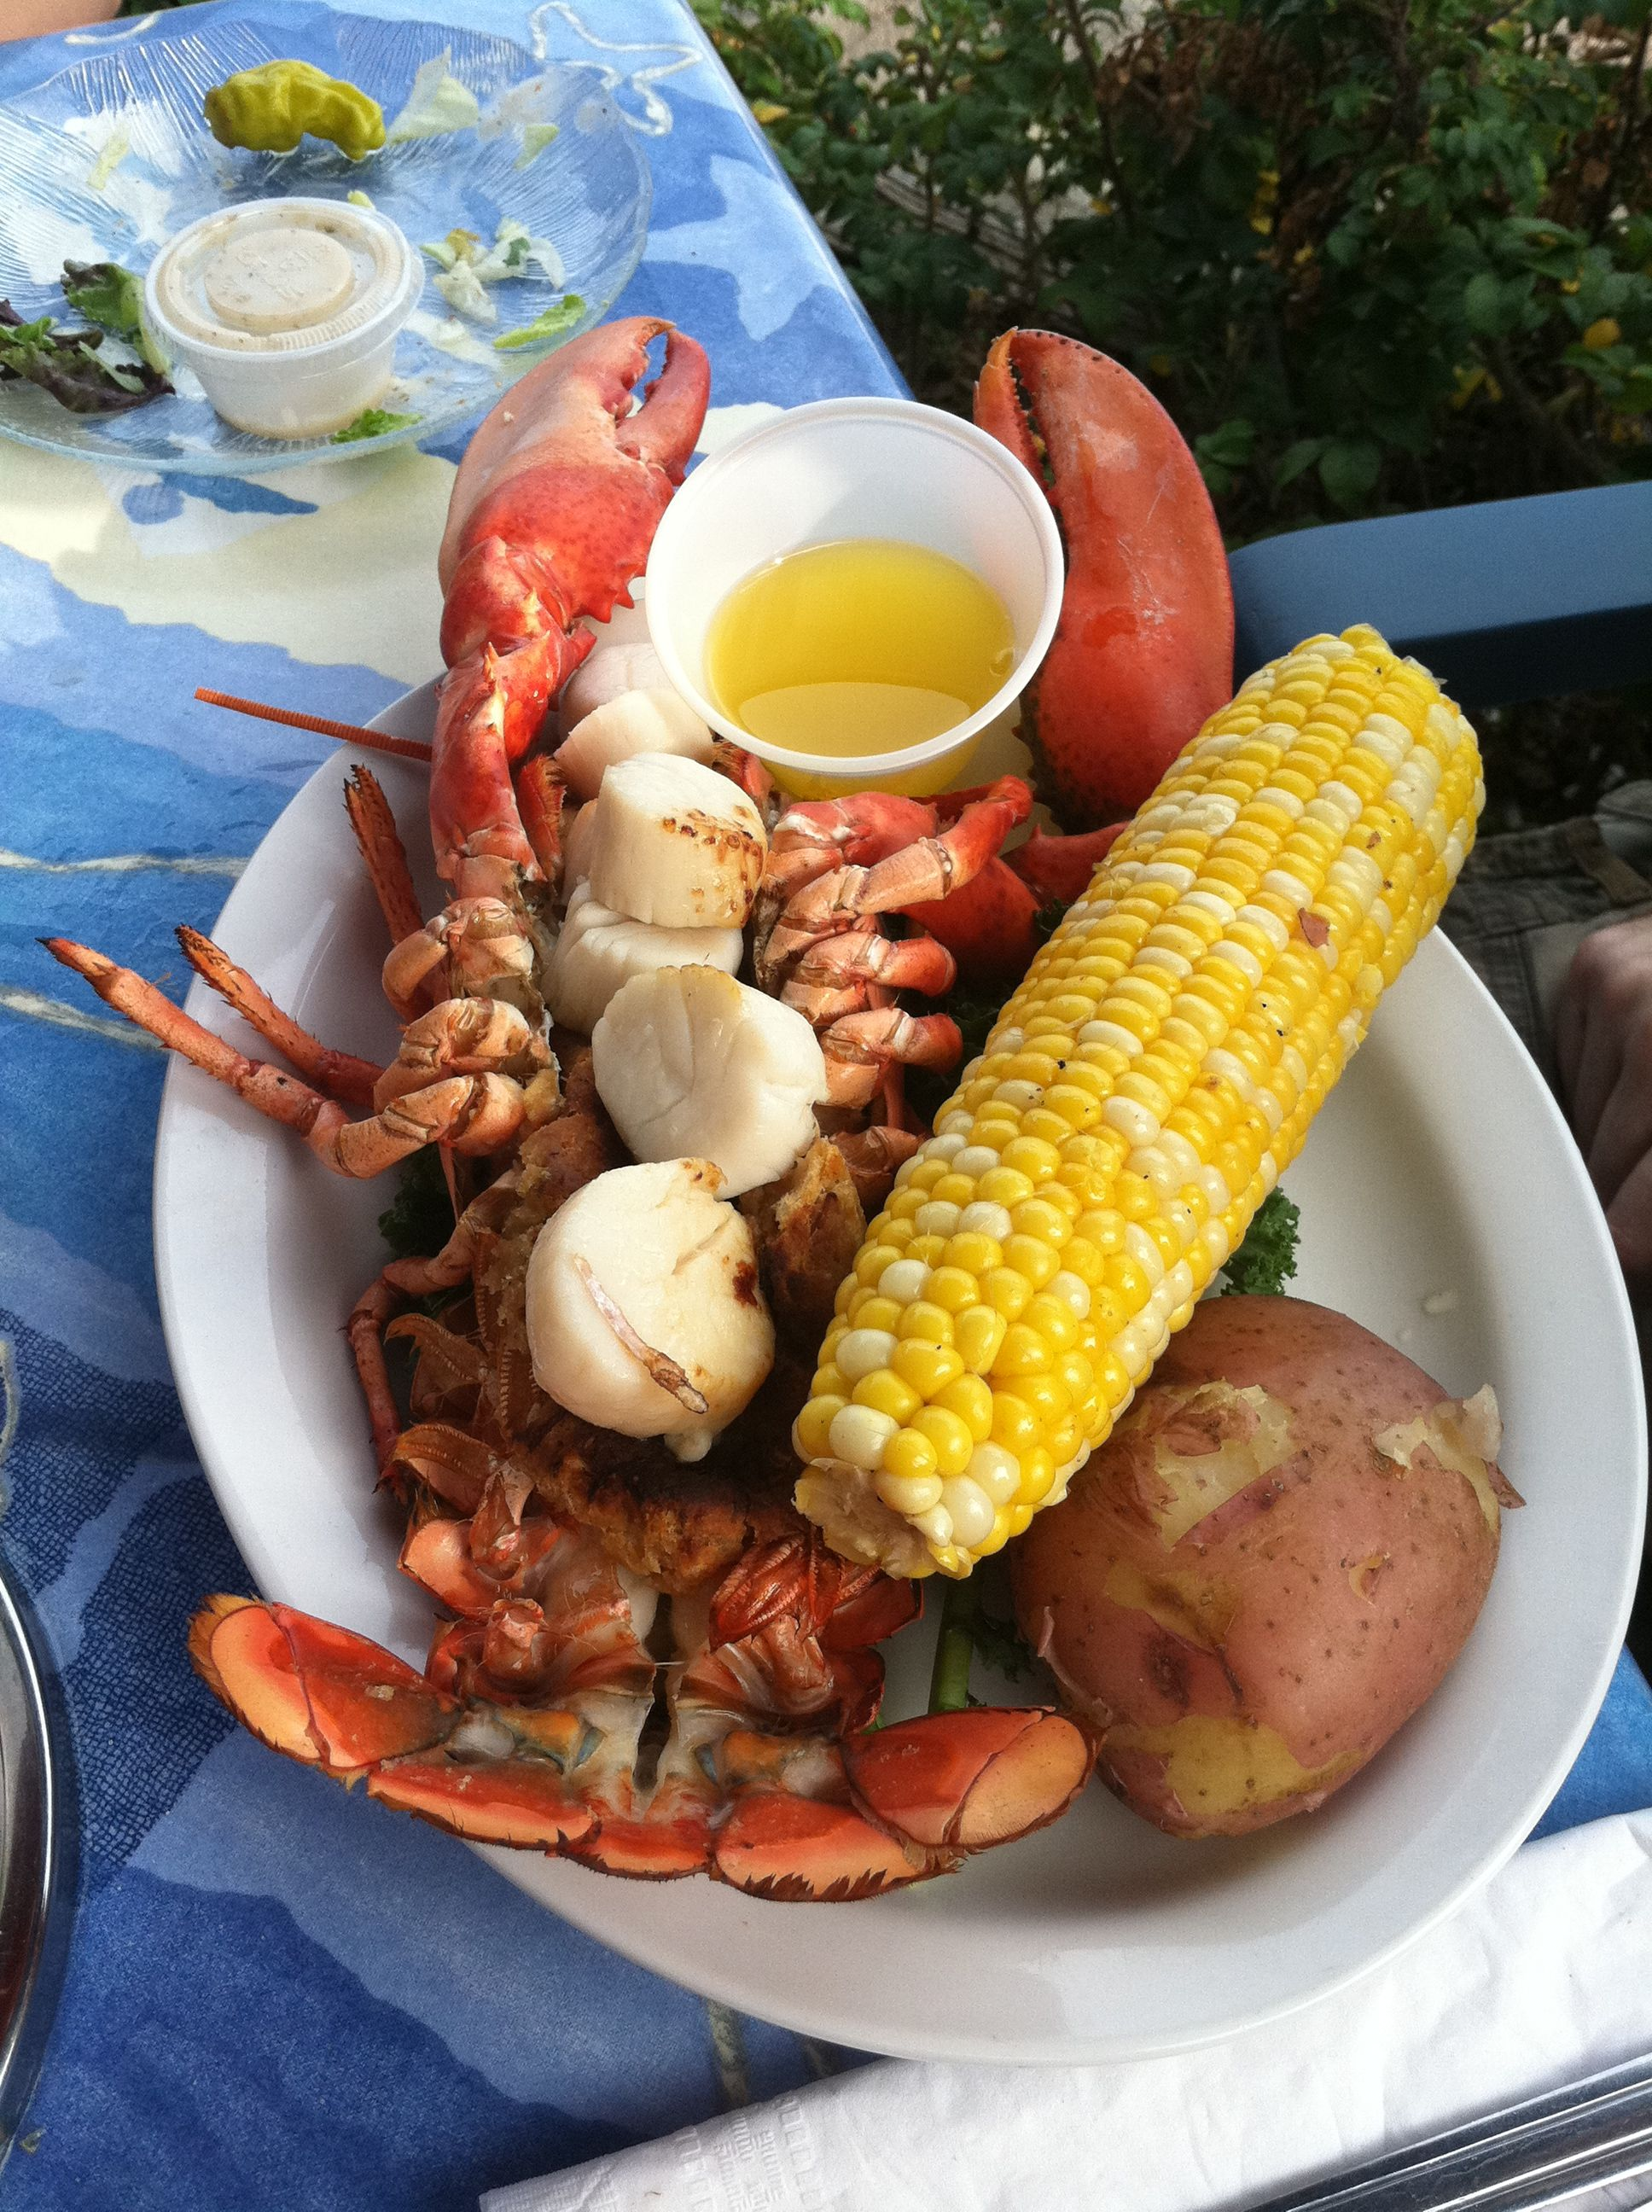 Amazing cape cod dinner from spanky 39 s clam shack food for Cape cod fish market